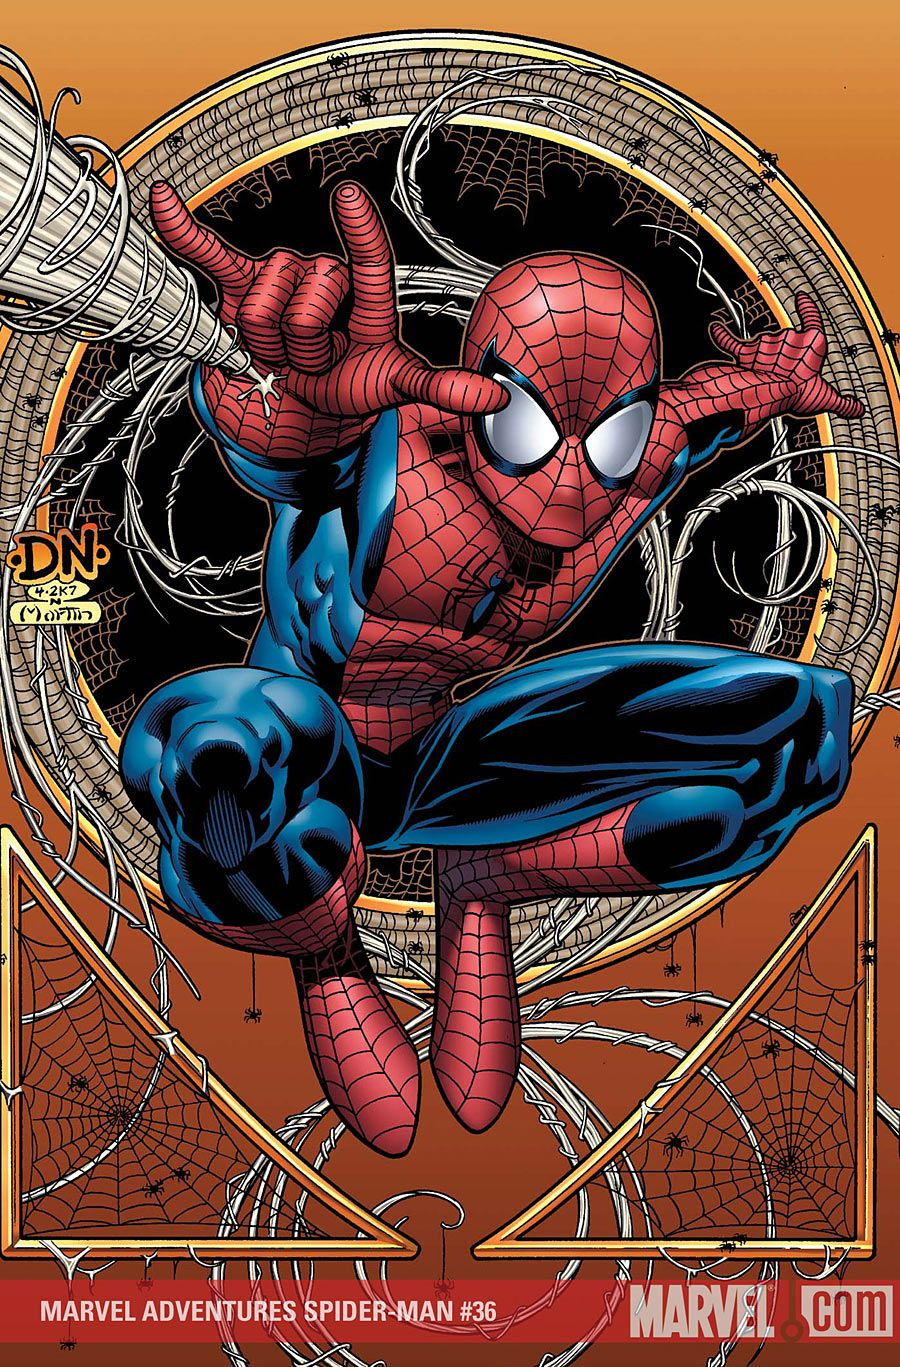 Marvel Adventures Spider-Man #36 •David Nakayama